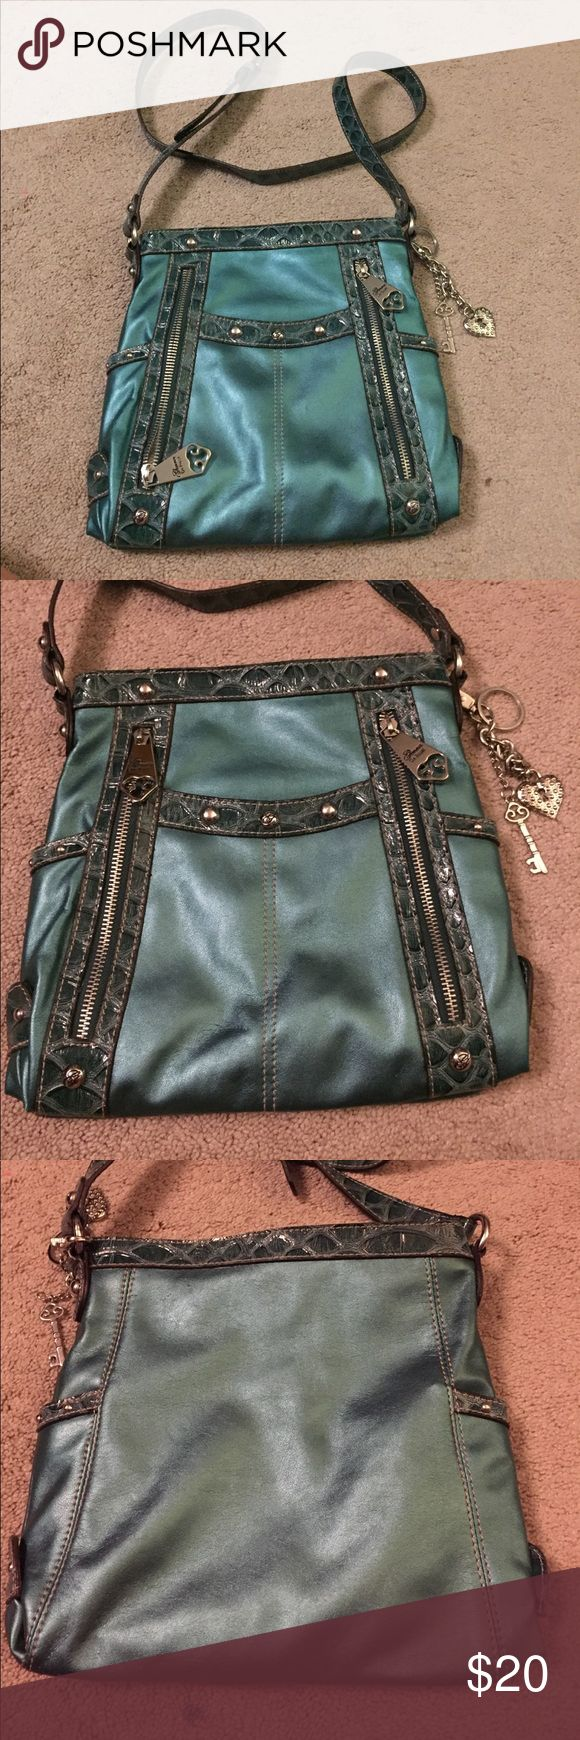 Genna de Rossi Teal Purse with Long Strap Beautiful Teal purse with long strap. Two front zipper pockets. Two side pockets. Front middle pocket. Two charms with key and heart. Genna De Rossi Bags Crossbody Bags